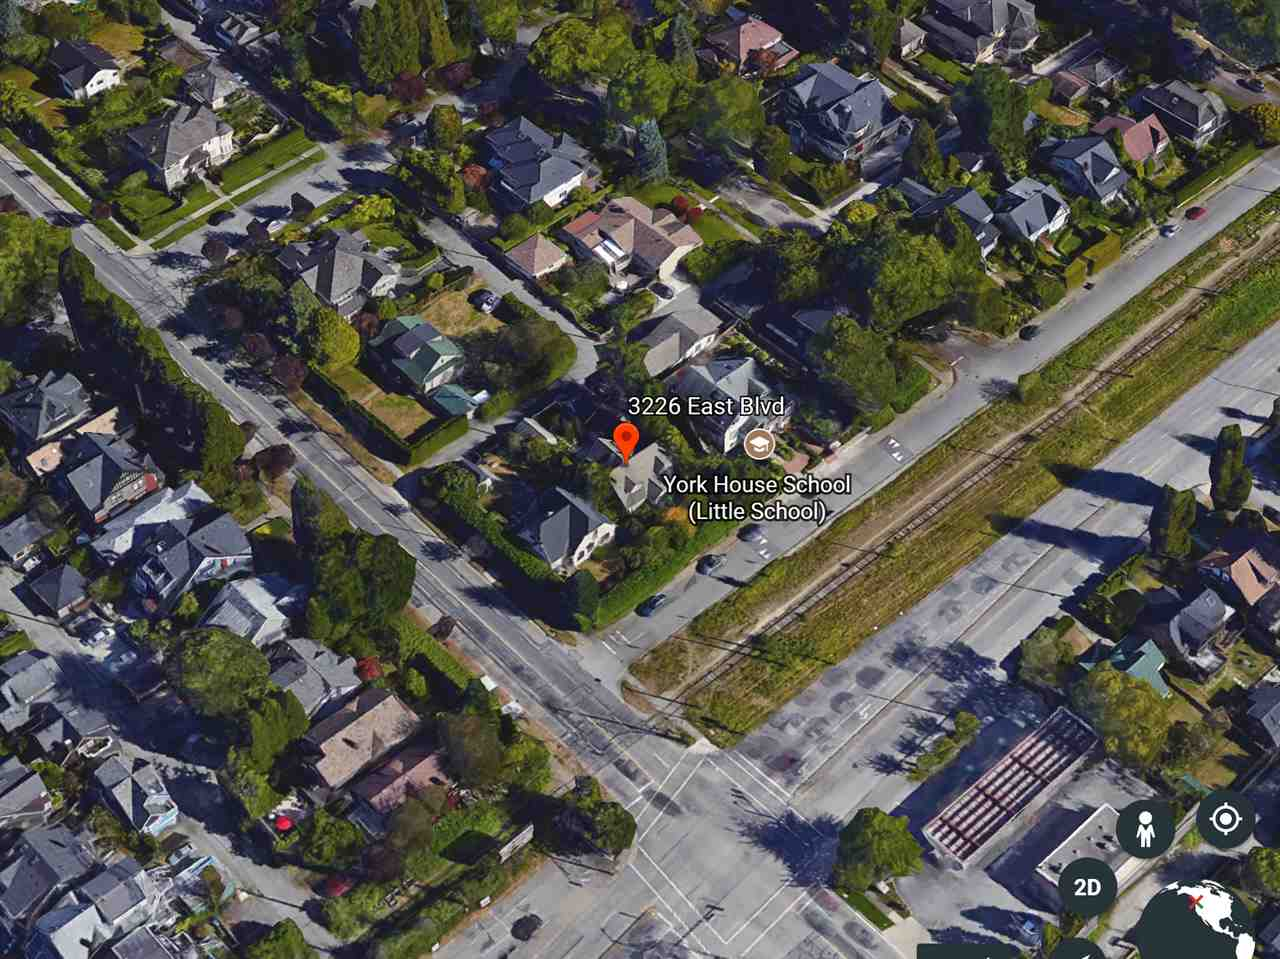 Developers Alert! A rare opportunity to potentially apply and develop high-end townhouse project in the most prestigious First Shaughnessy. - Adjacent Lot 3212 East Blvd. has approved for townhouse rezoning of FSR 1.18 and is also for sale C8015218 and R2215410. - Not within First Shaughnessy Heritage Conservation Area - Strong downsizing demand but no supply in First Shaughnessy. - Irreplaceable location with Arbutus Greenway at door front, easy access to transit, shopping, dining, UBC & Cypress Bikeway. - Surrounded by Vancouver's best private/ public schools.